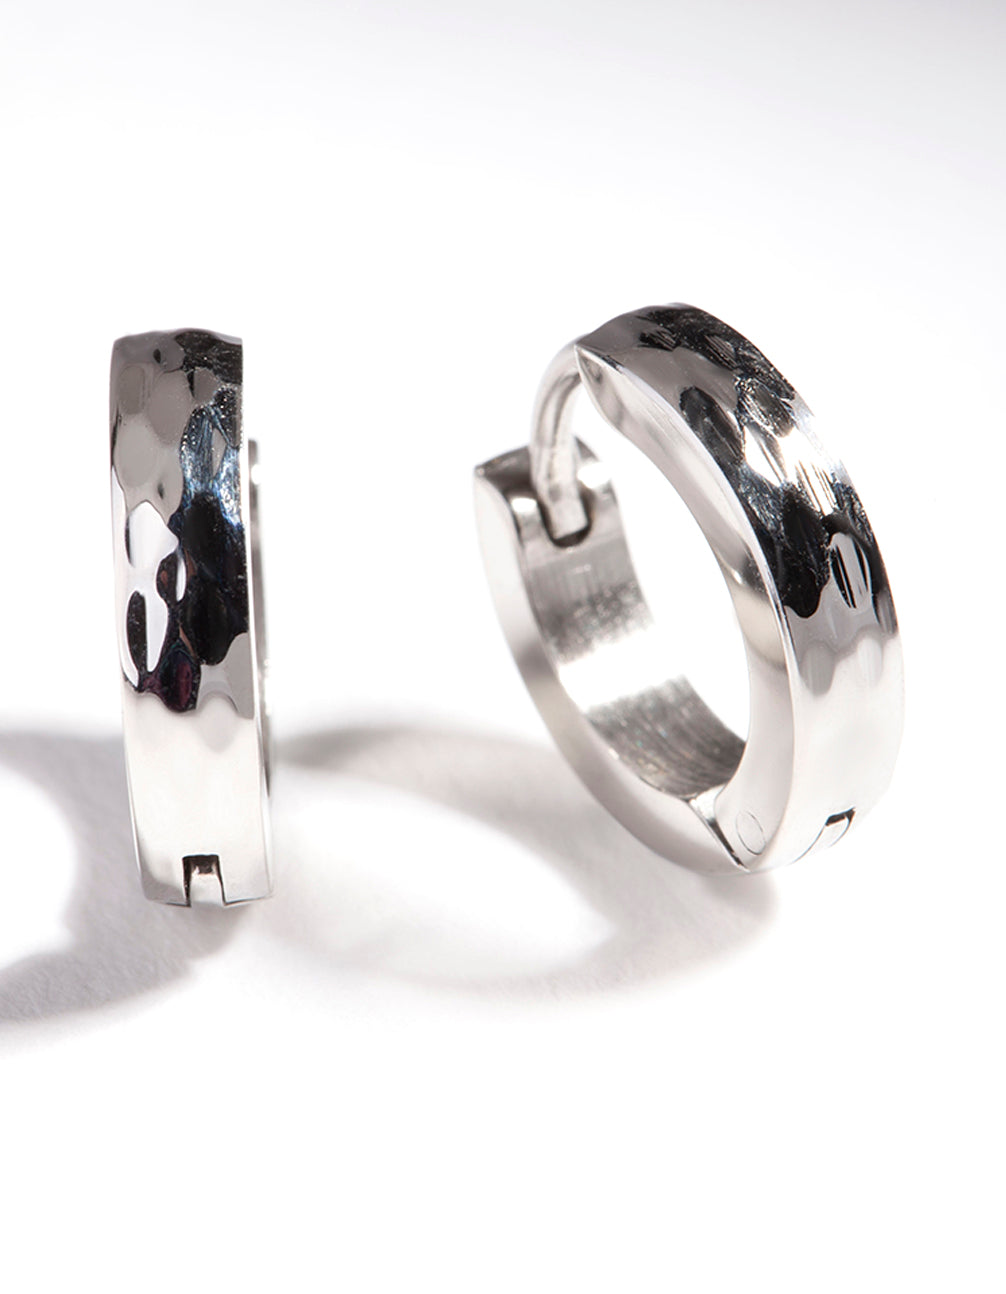 Rhodium Surgical Steel Textured Huggie Earrings